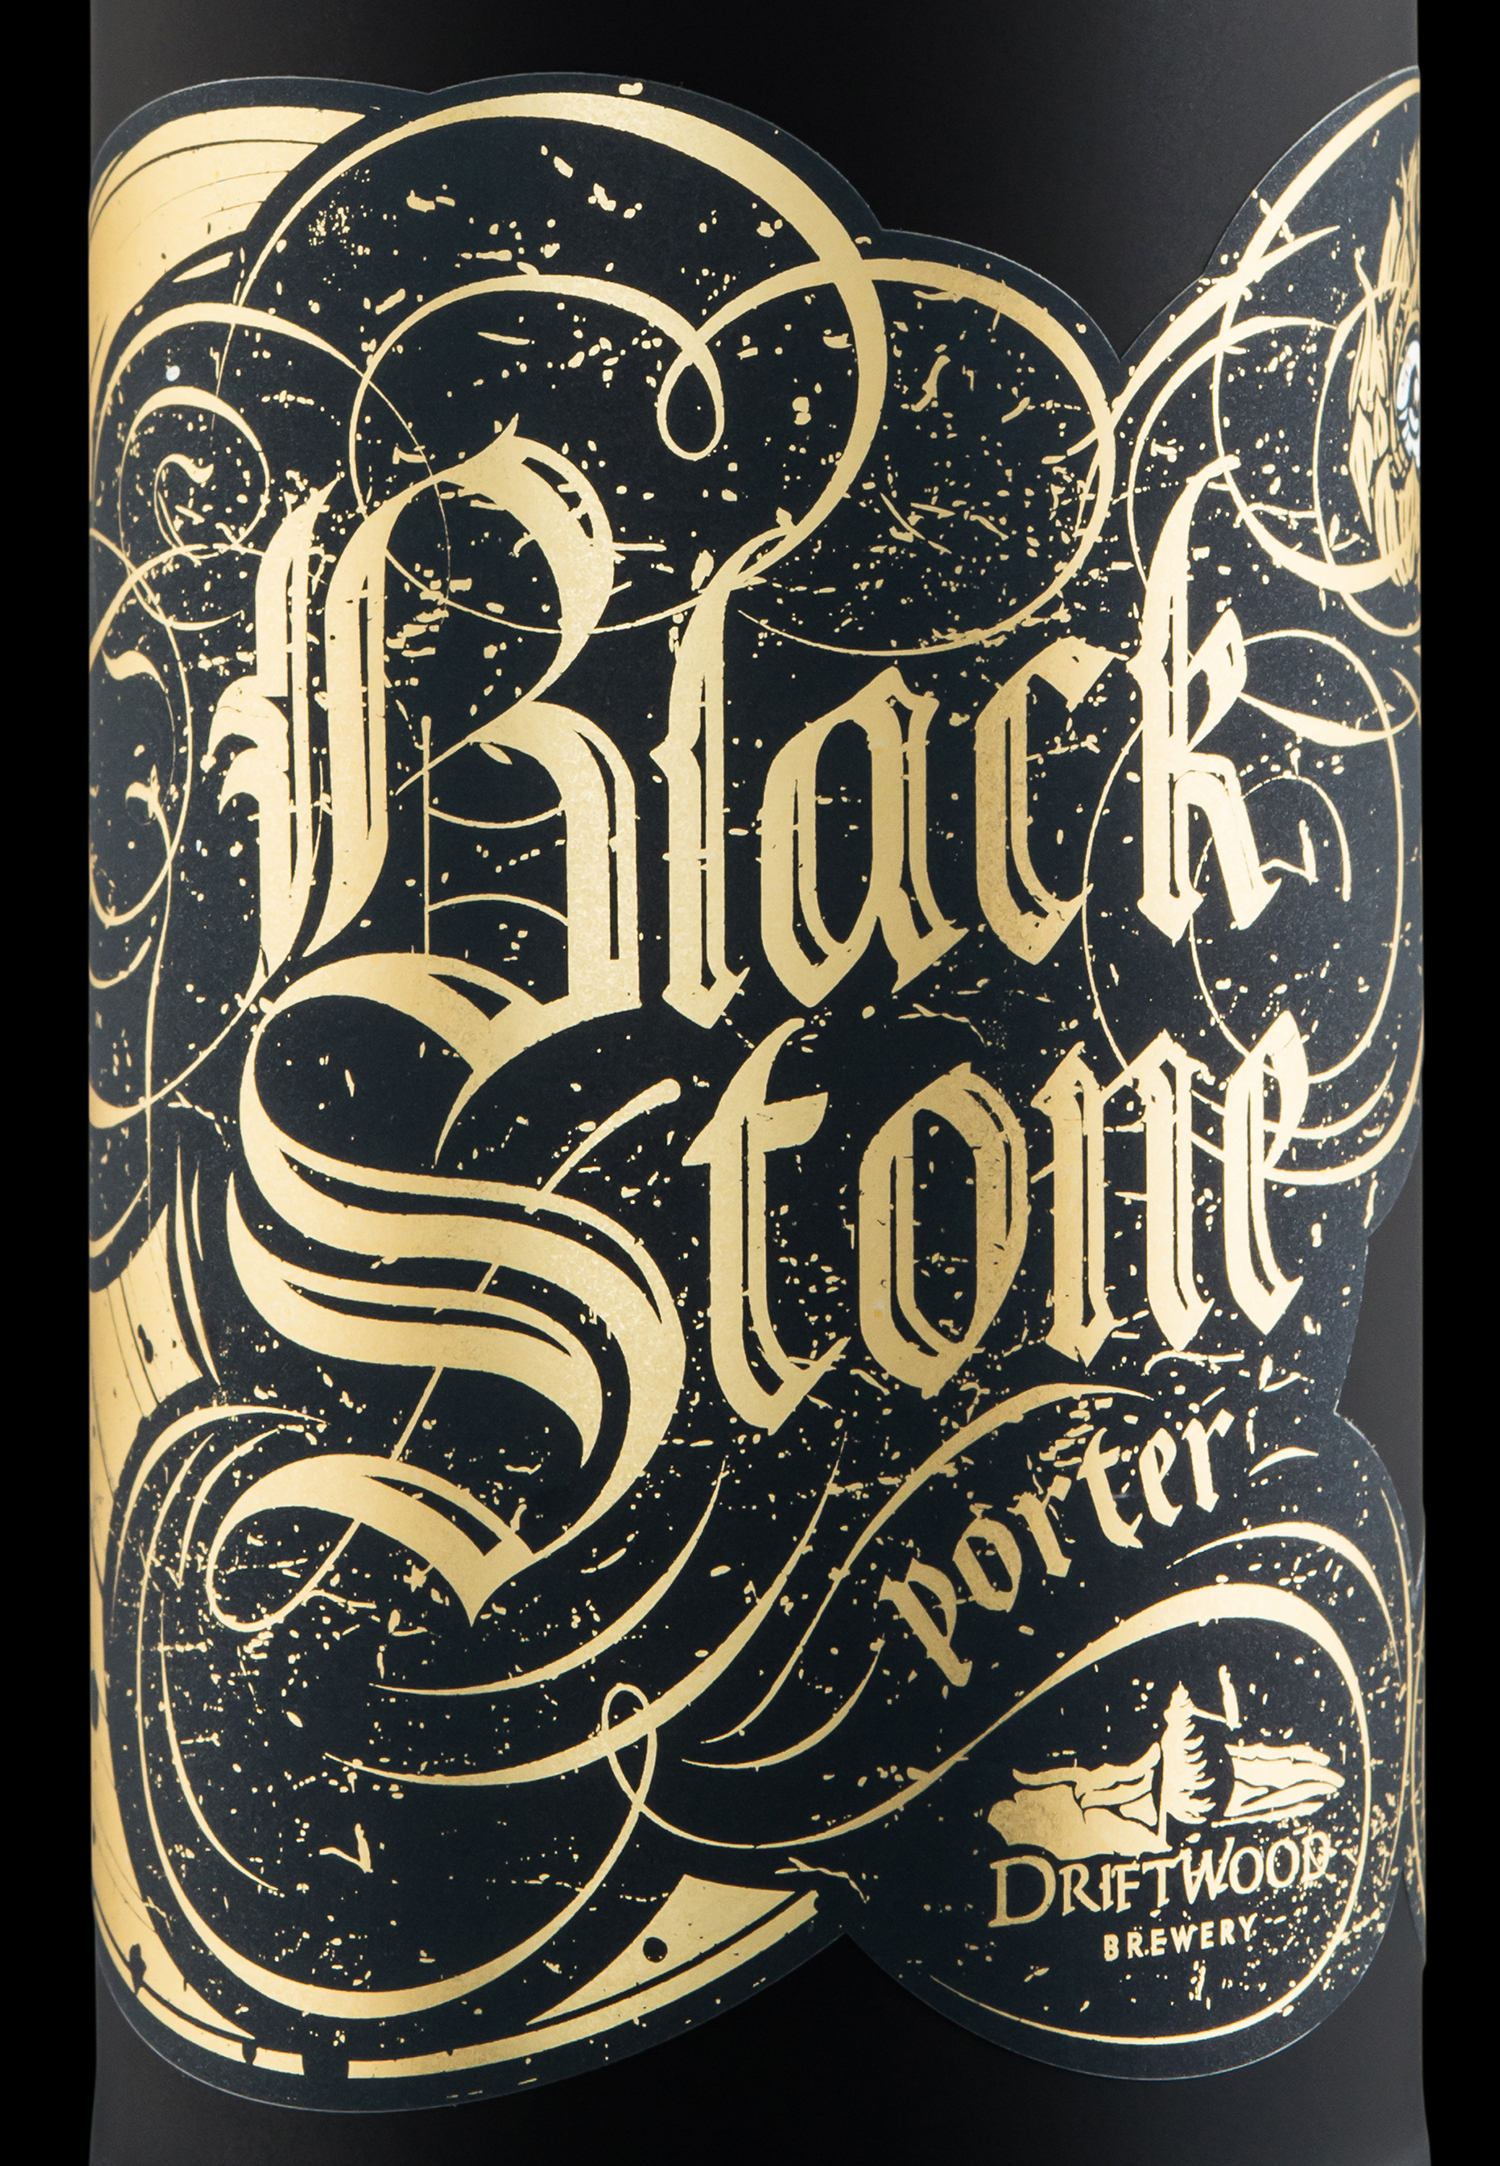 Packaging Design for Driftwood Brewery's Blackstone Porter